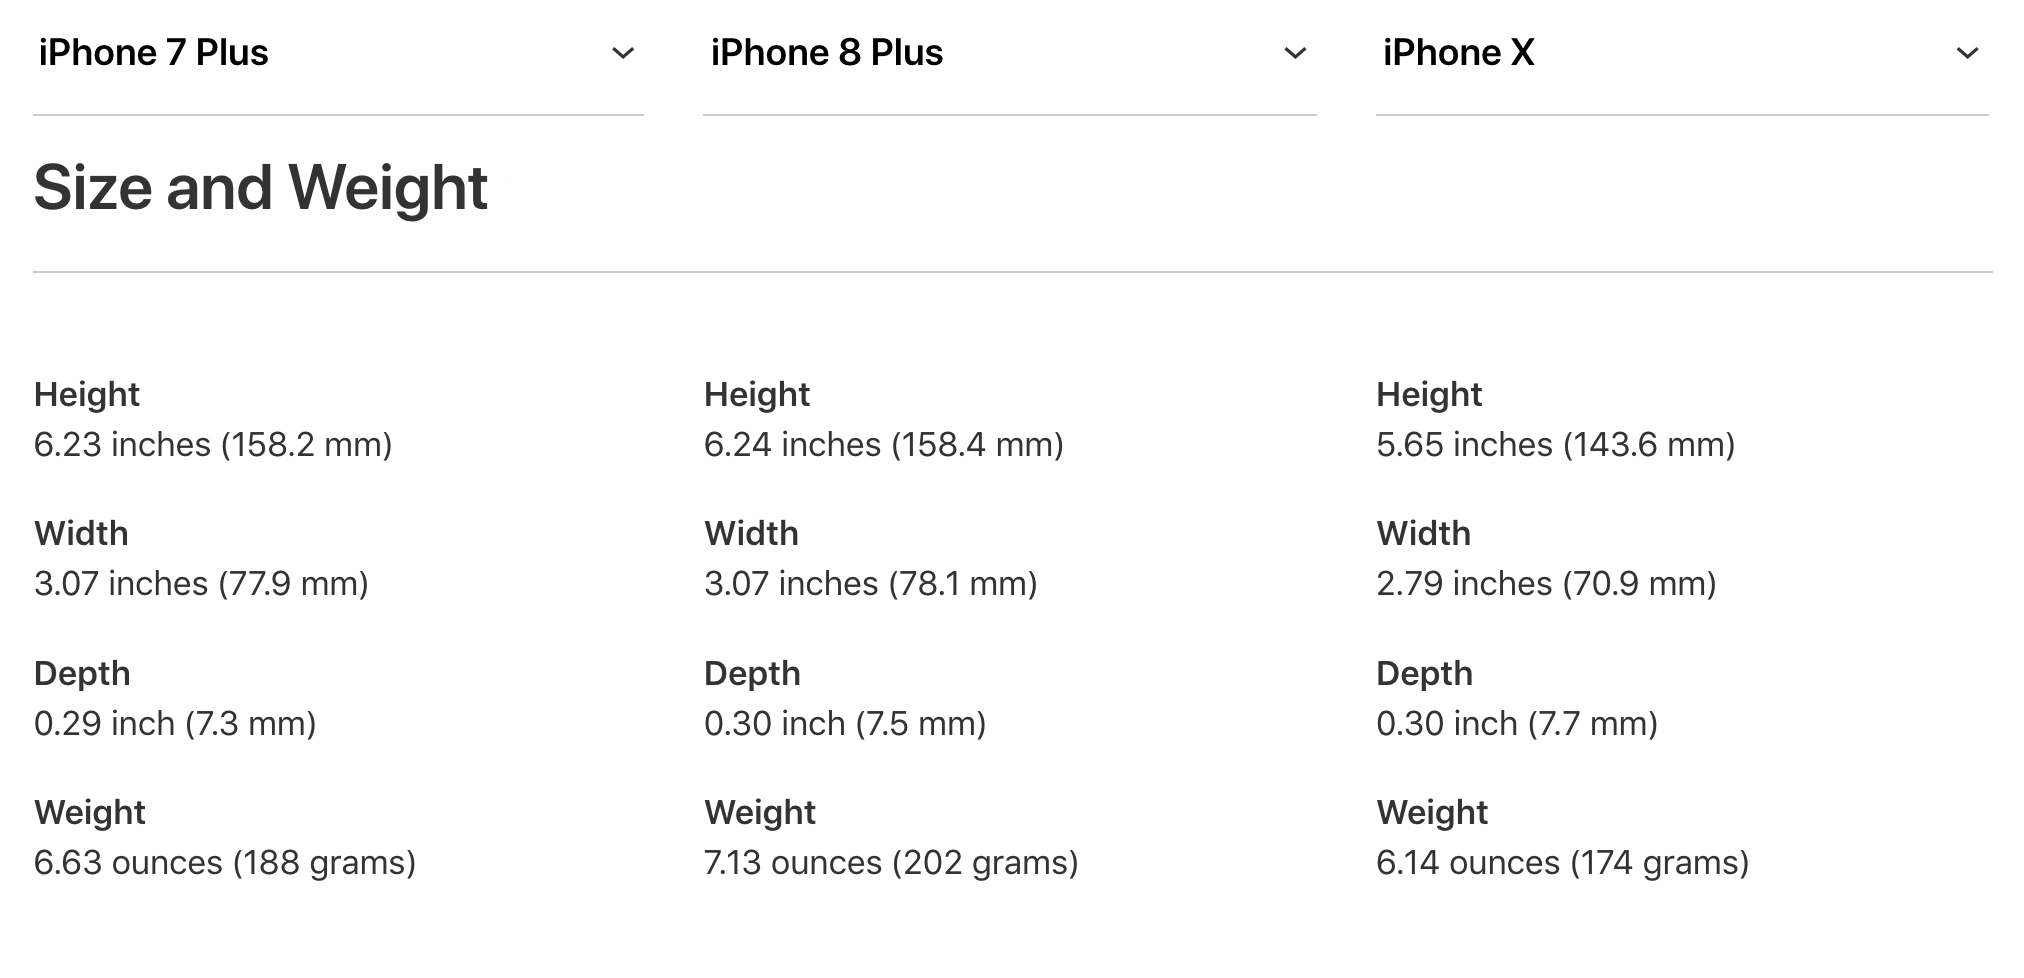 weight size and battery life iphone x vs iphone 8 vs iphone 7